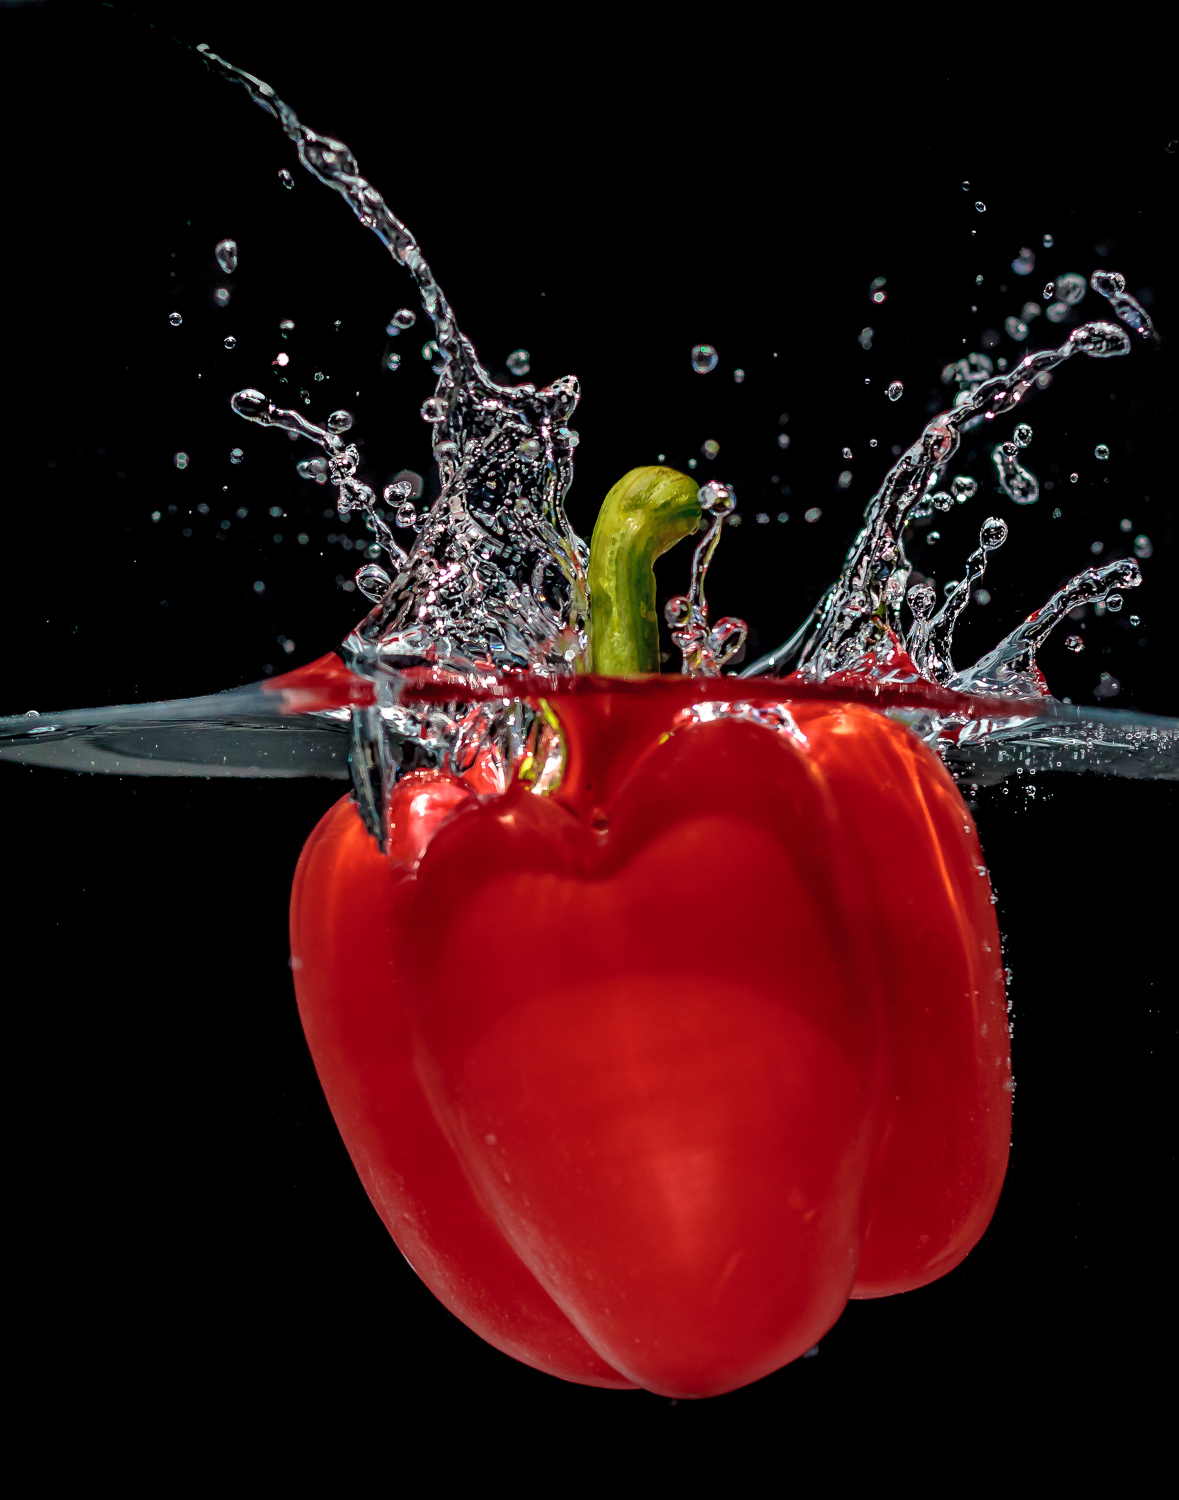 Making the Shot: Your Guide to Creating Stunning High-Speed Splash Photos Without Flash